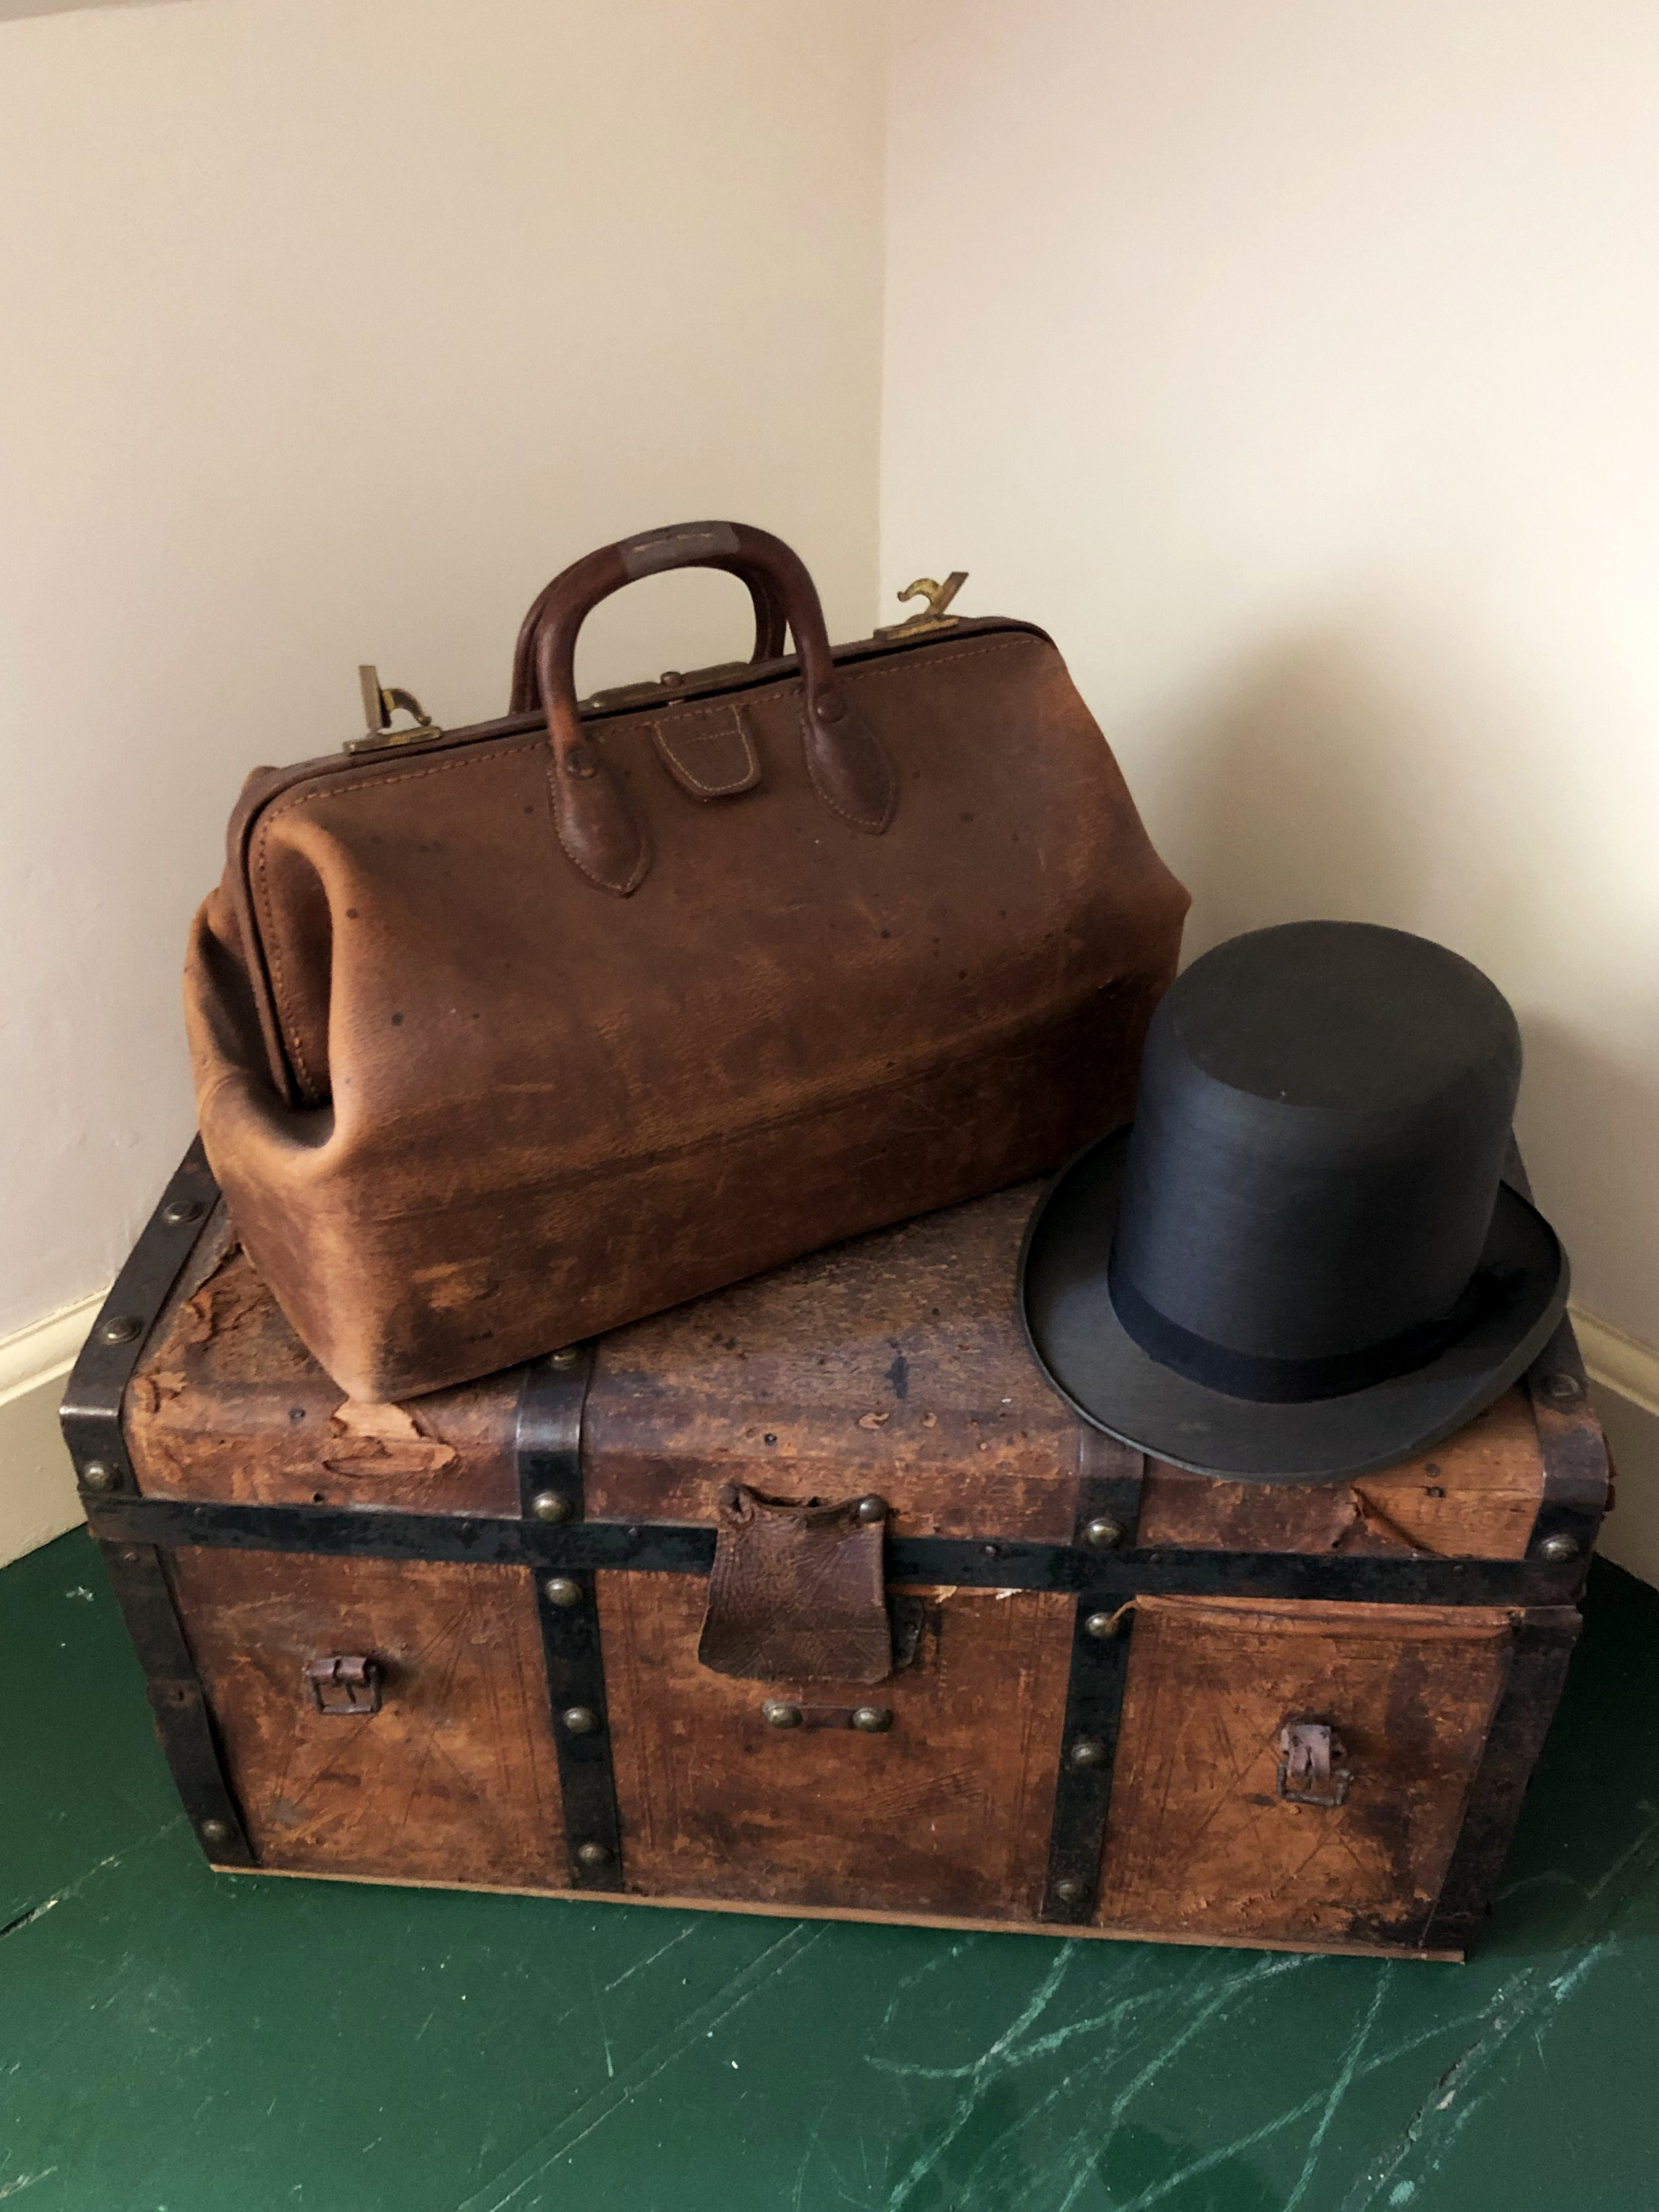 Squire-Doaks-tophat-trunk-bag.jpg